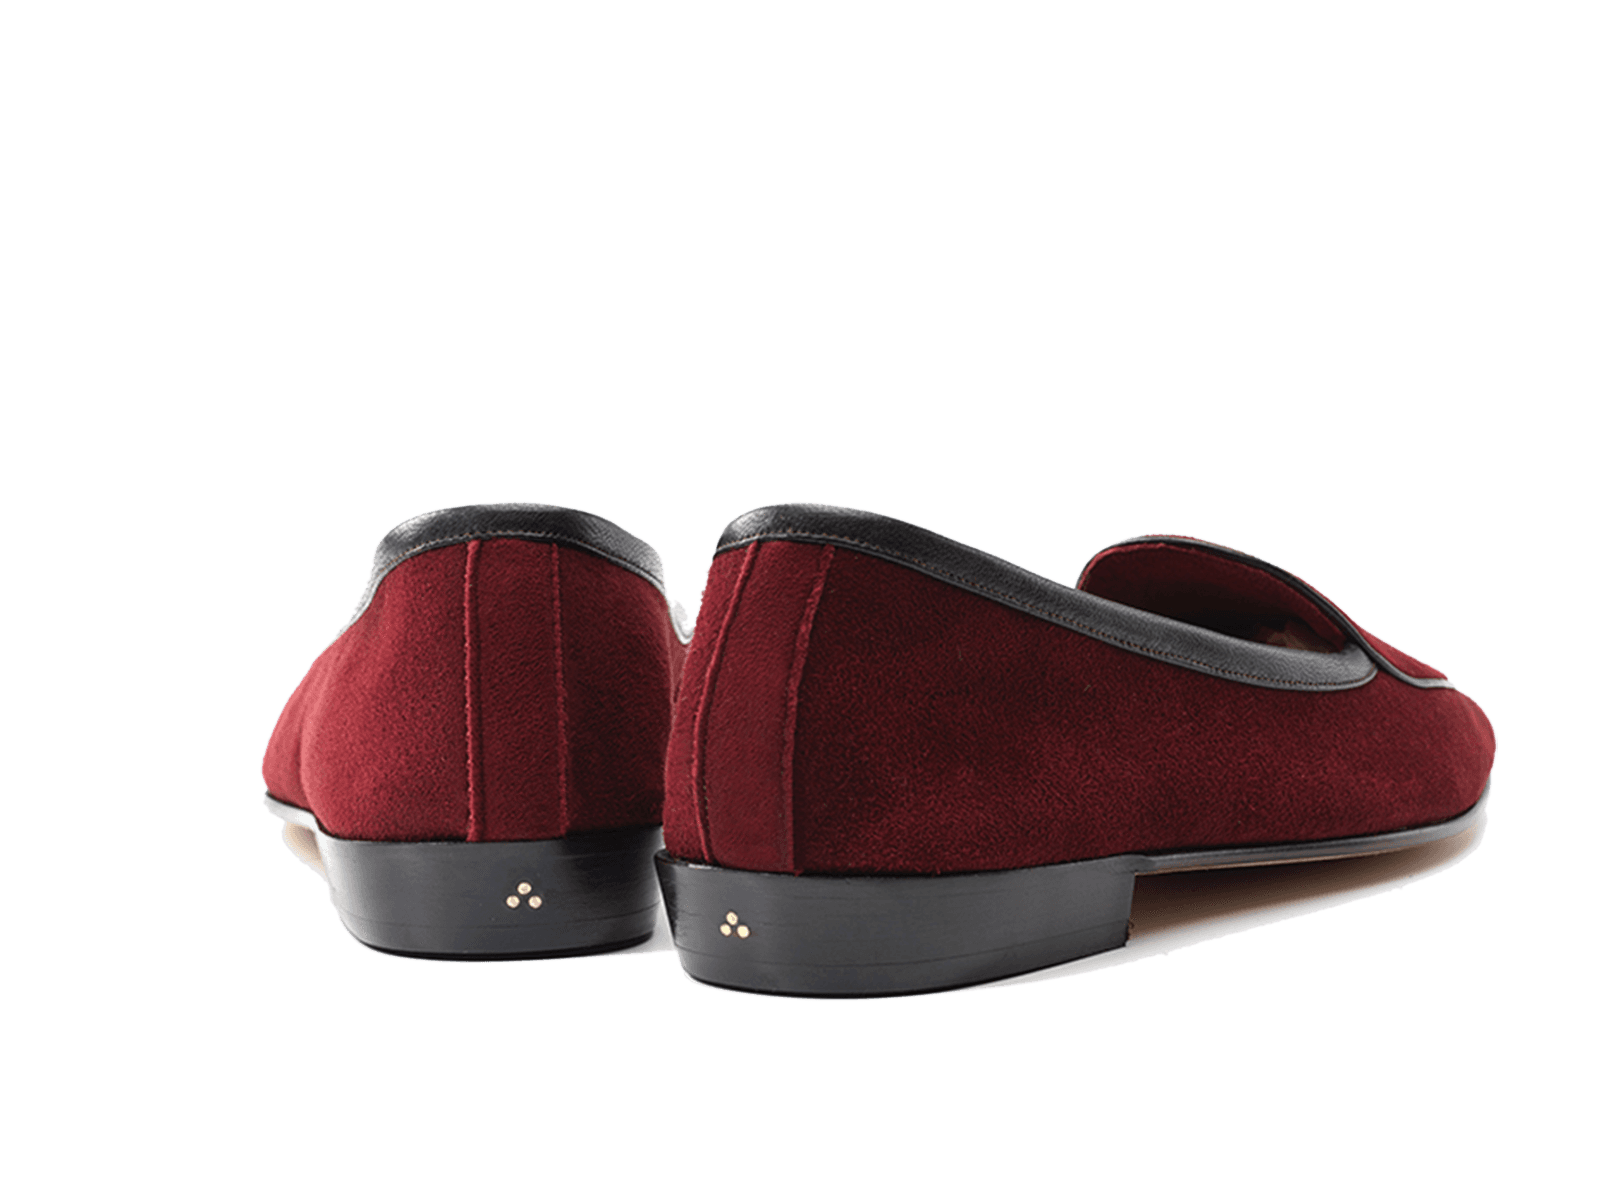 Sagan Classic Plain in Vougeot Burgundy Suede